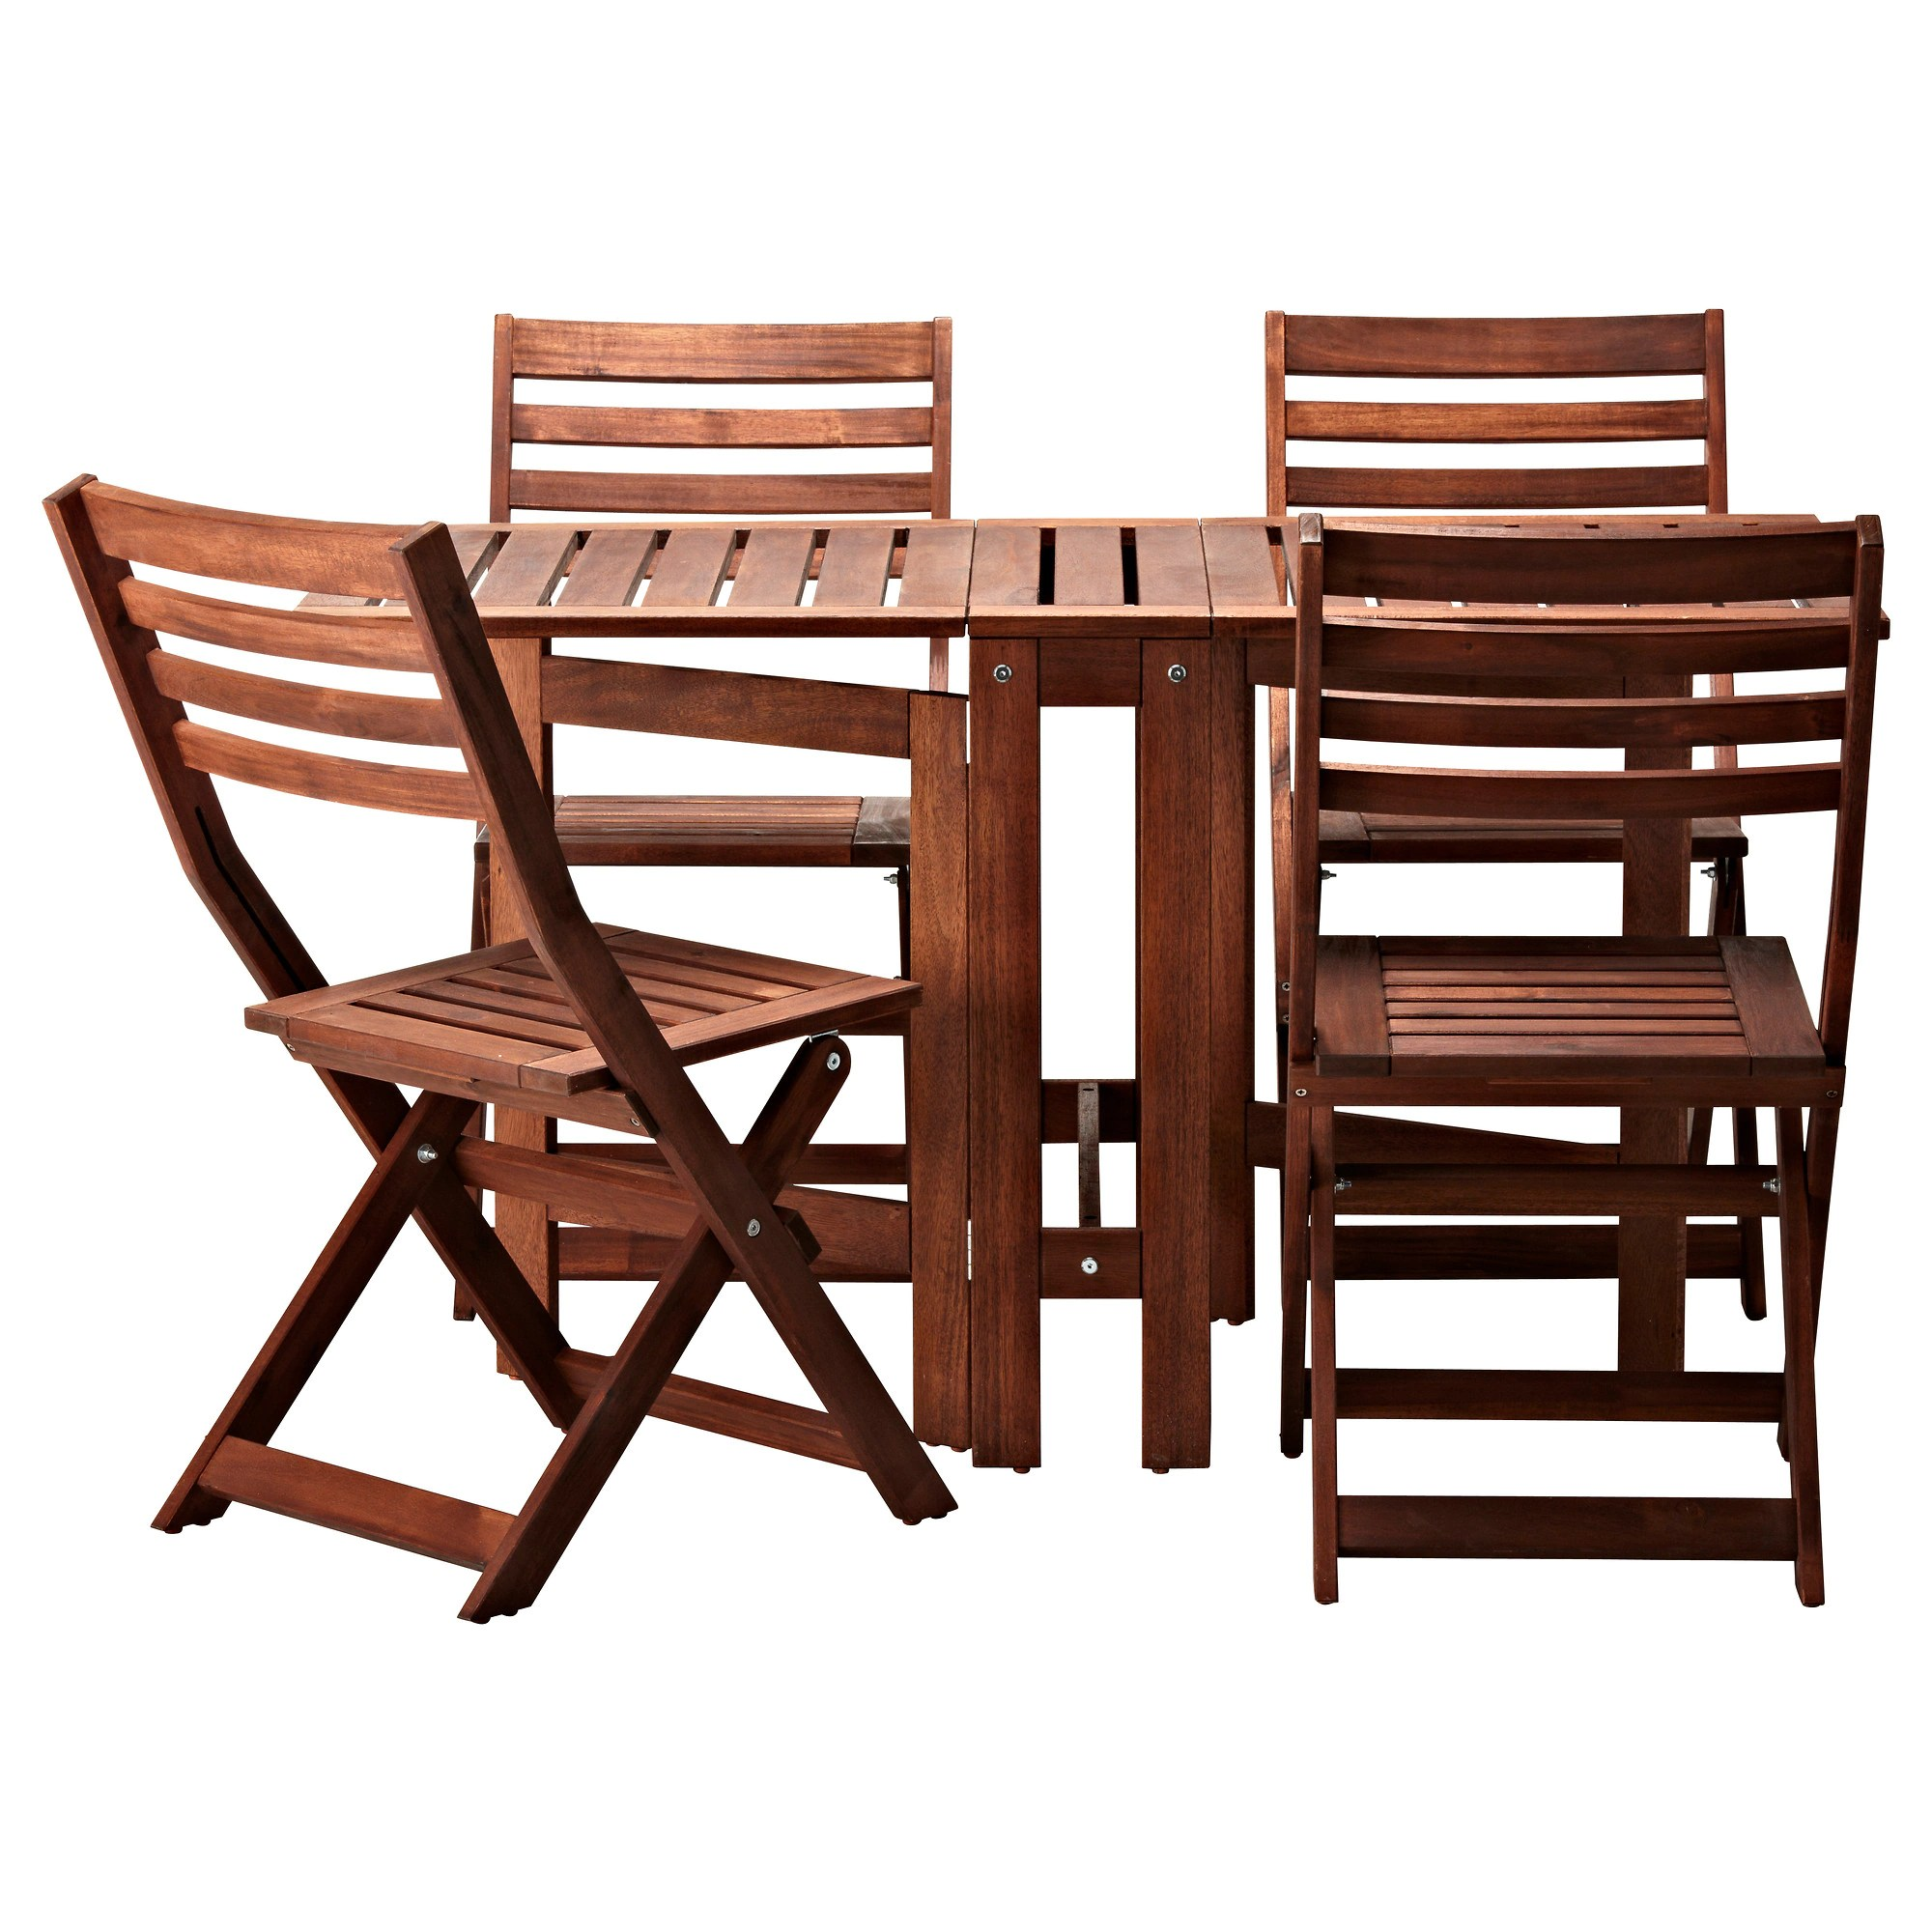 Folding Wooden Table Ikea ÄpplarÖ Table And 4 Folding Chairs Outdoor Brown Stained Brown